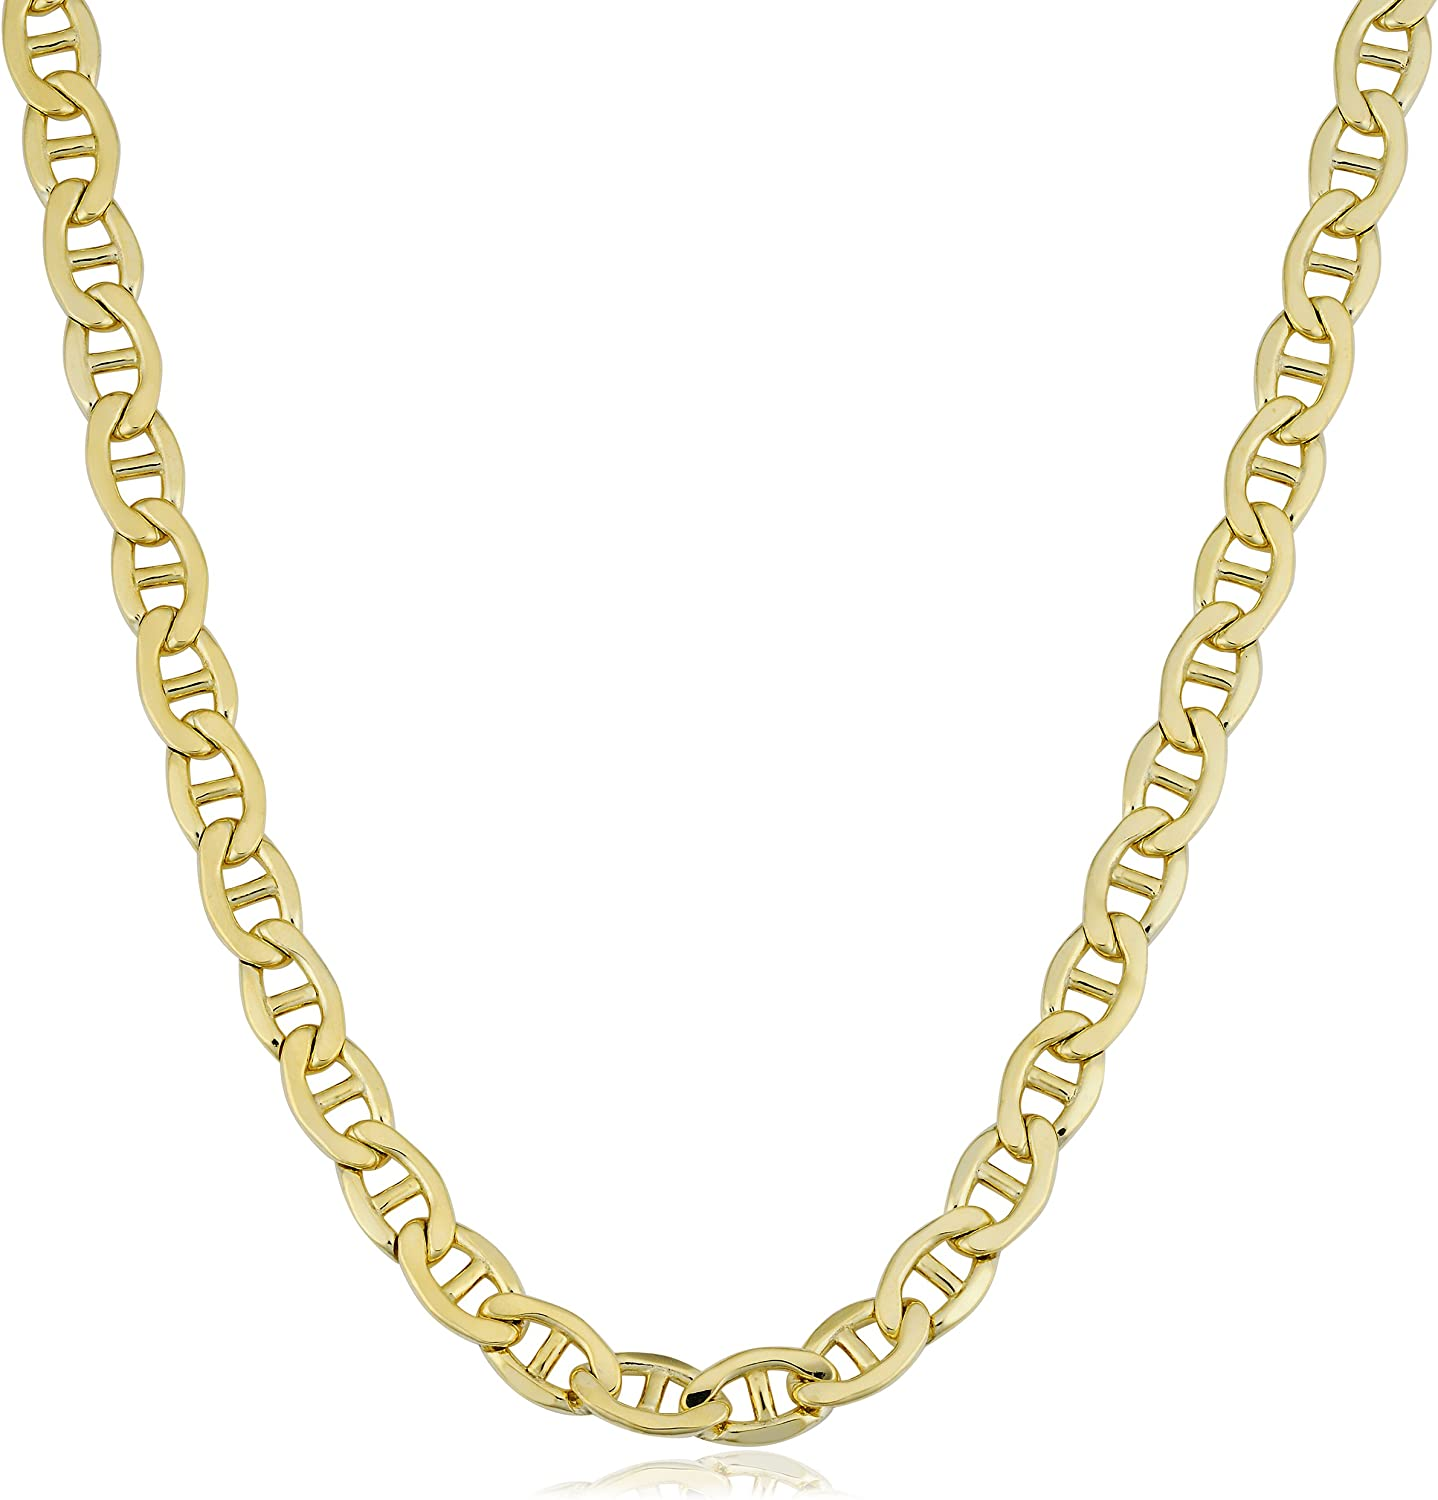 Kooljewelry Mens 14k Yellow Gold Filled Heavyweight 5.8 mm Mariner Link Chain Necklace